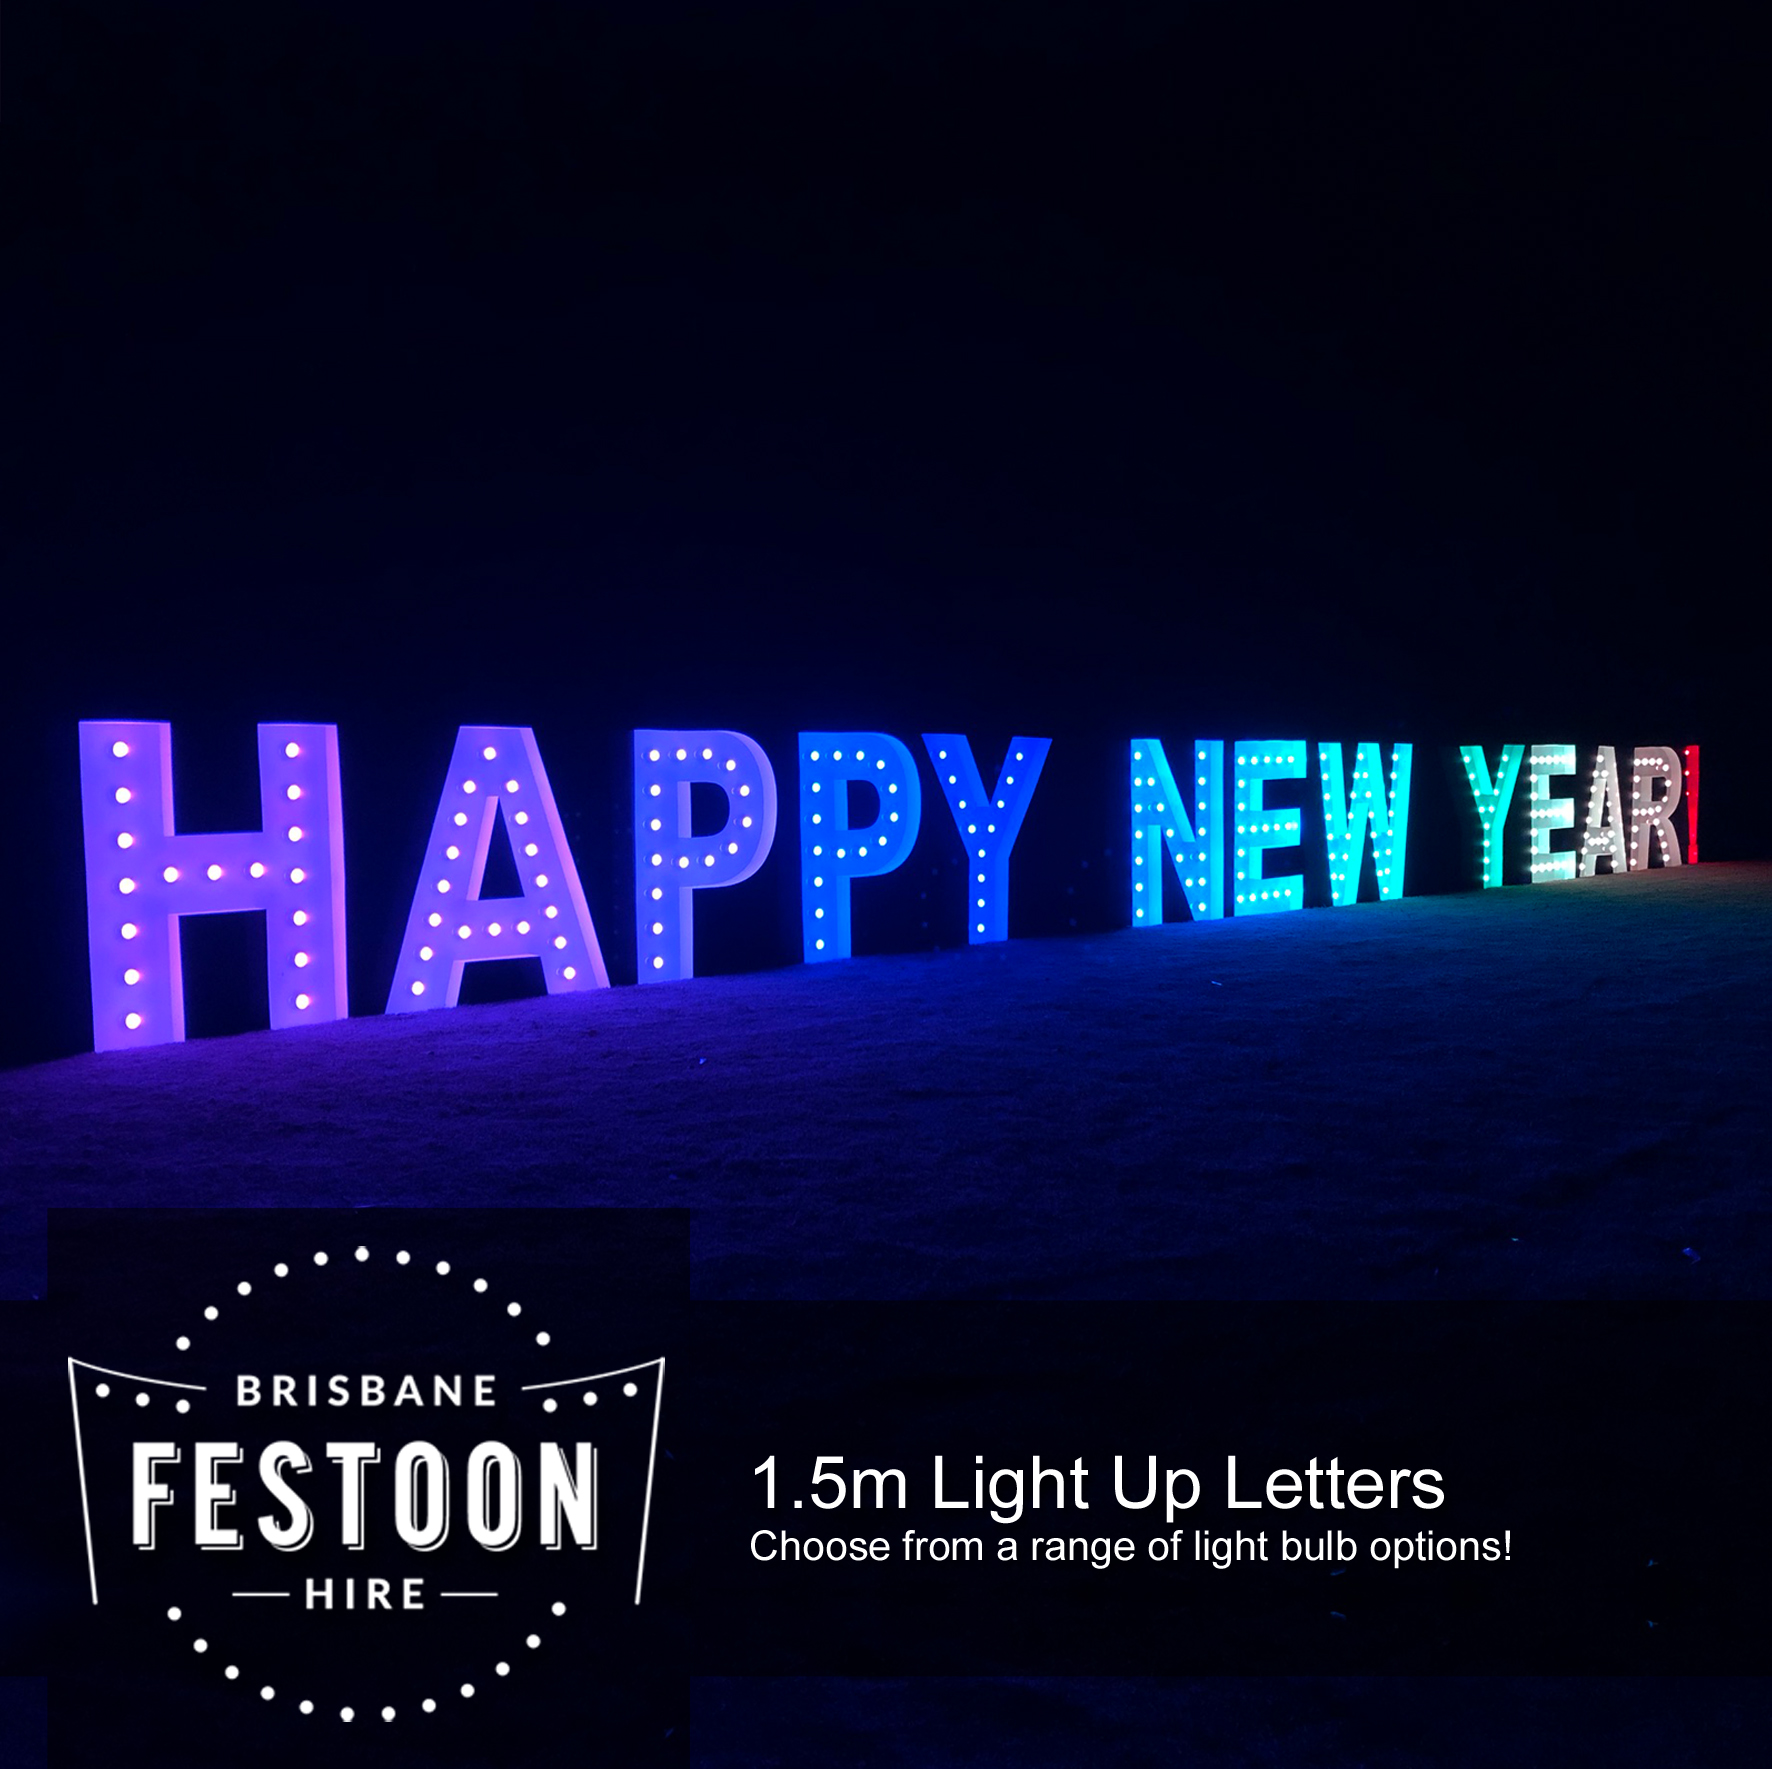 Brisbane Festoon Hire - Light Up Letter Hire.jpg